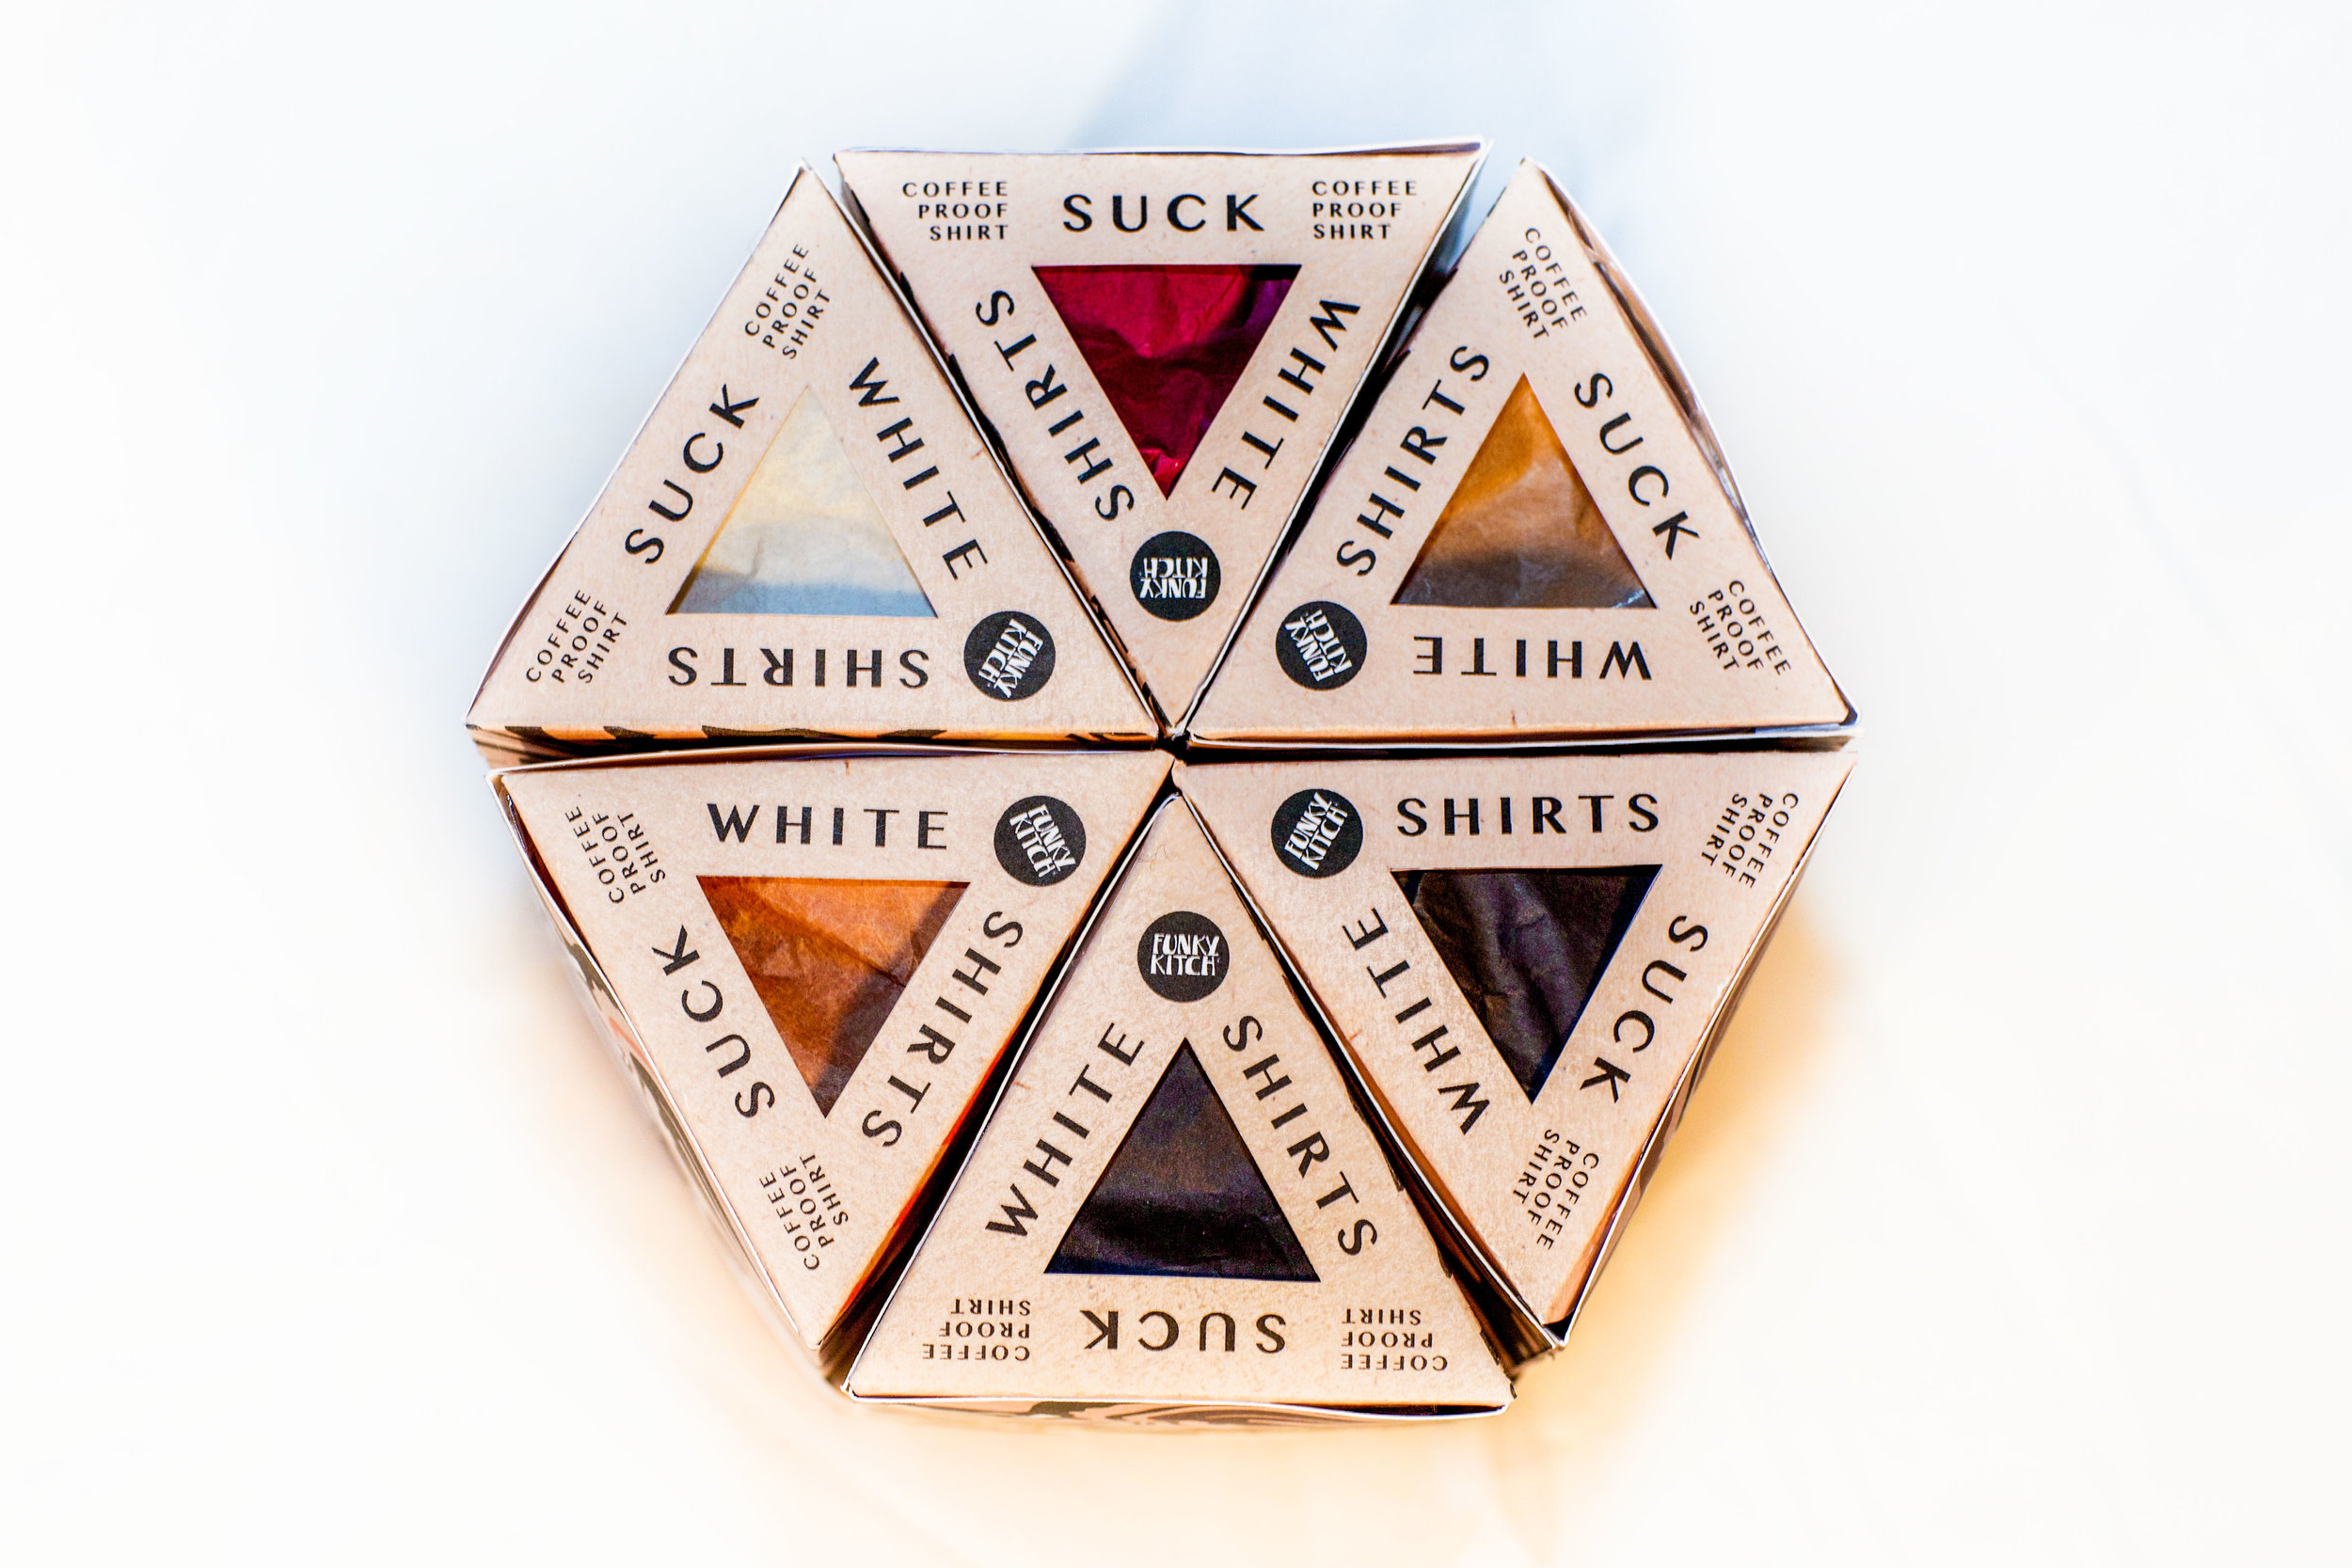 KITCH -COFFEE PROOF SHIRT - PACKAGING DESIGN